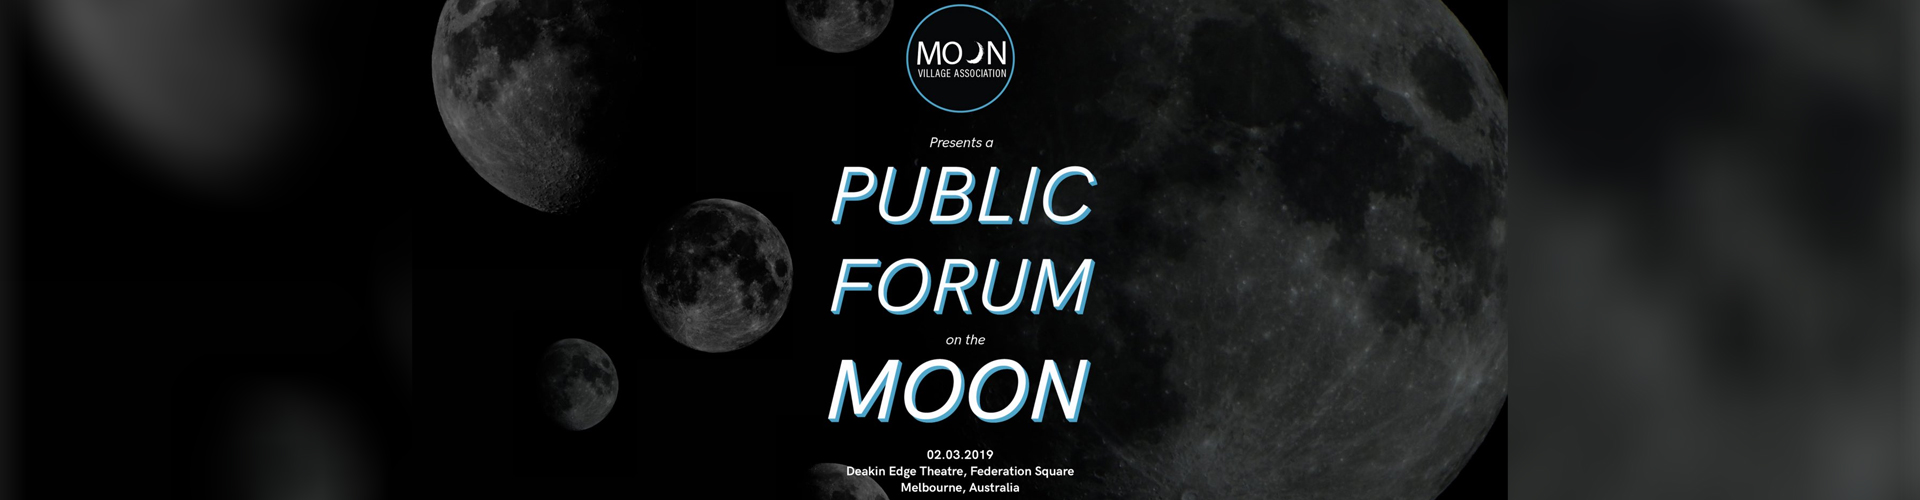 Recordings from the Public Forum on the Moon 2019, Melbourne, Australia